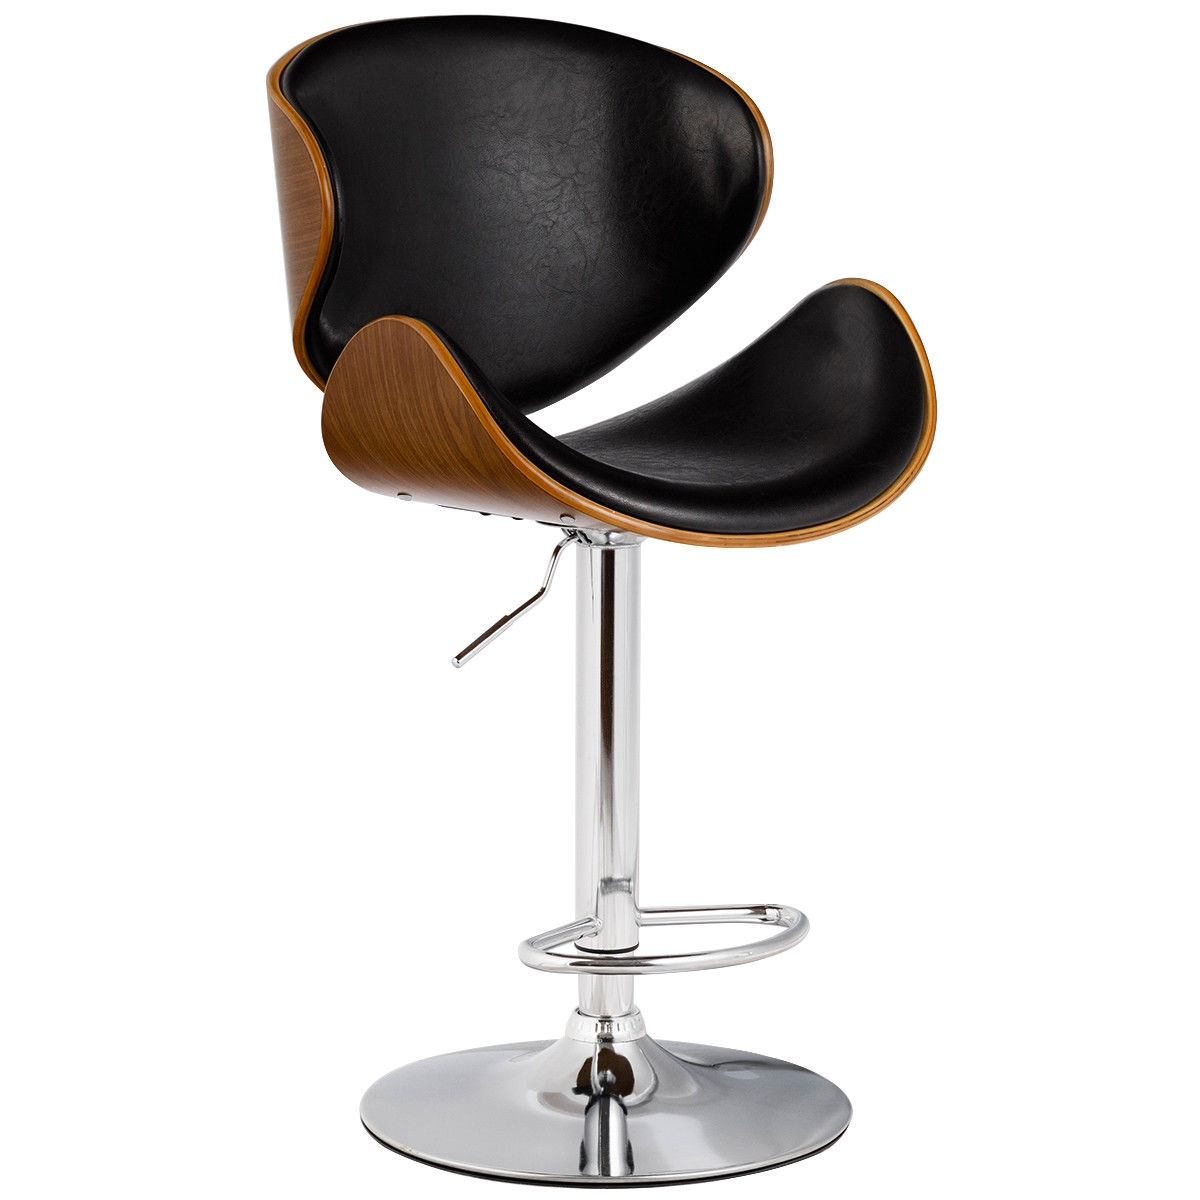 This is our classic bar stool, which will offer you a comfortable seating experience. Its simple but elegant design makes it perfect for home, restaurant, company use etc. It is in high quality and comes at a very good price. Waterproof and anti-aging PU leather combining with heavy duty metal frame provides you years of durable use. It has an ergonomic back design, cushioned seat, and a swivel design, which make it stylish yet comfortable at the same time. Don't hesitate to buy it now and enjoy sitting on it! Brand new and high quality Comfortable back rest with stylish modern design Swivel 360 degrees The base and foot rest, constructed of chromed steel, durable and stable Wear-resisting, breathable, ageing resisting and no peculiar smell Adopts ergonomic principles Wooden seat with PU leather surface Pneumatic adjustable height with handle, easy and safe for adjustment Plating processing can isolate air antirust with strong mirror effect to highlight the texture Polypr